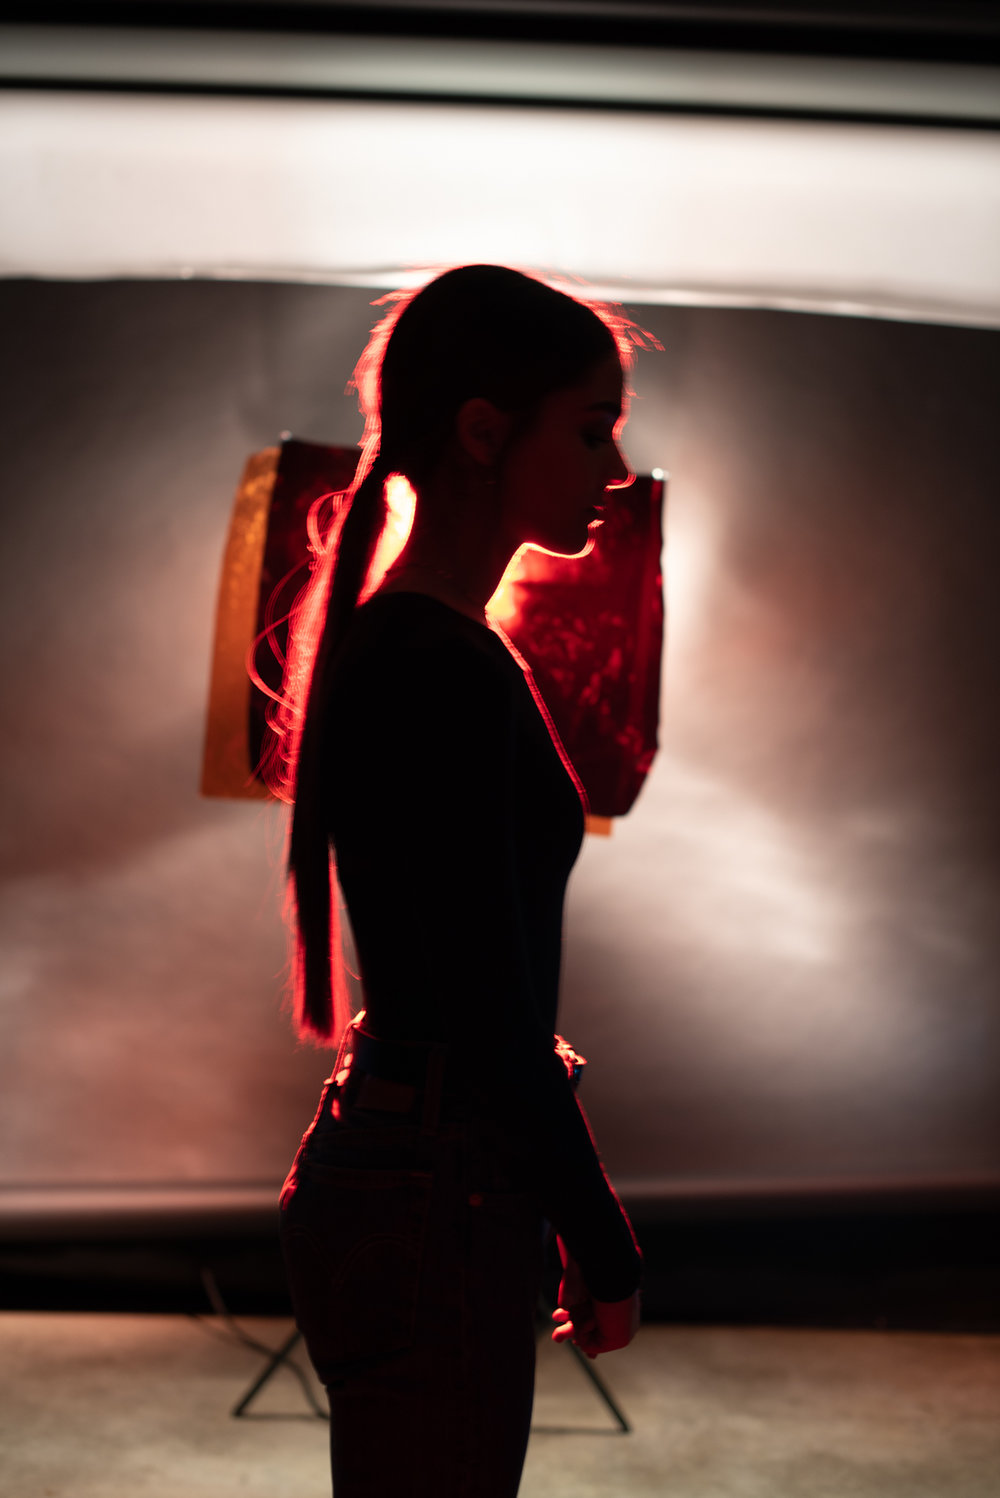 red light portraits-003.jpg